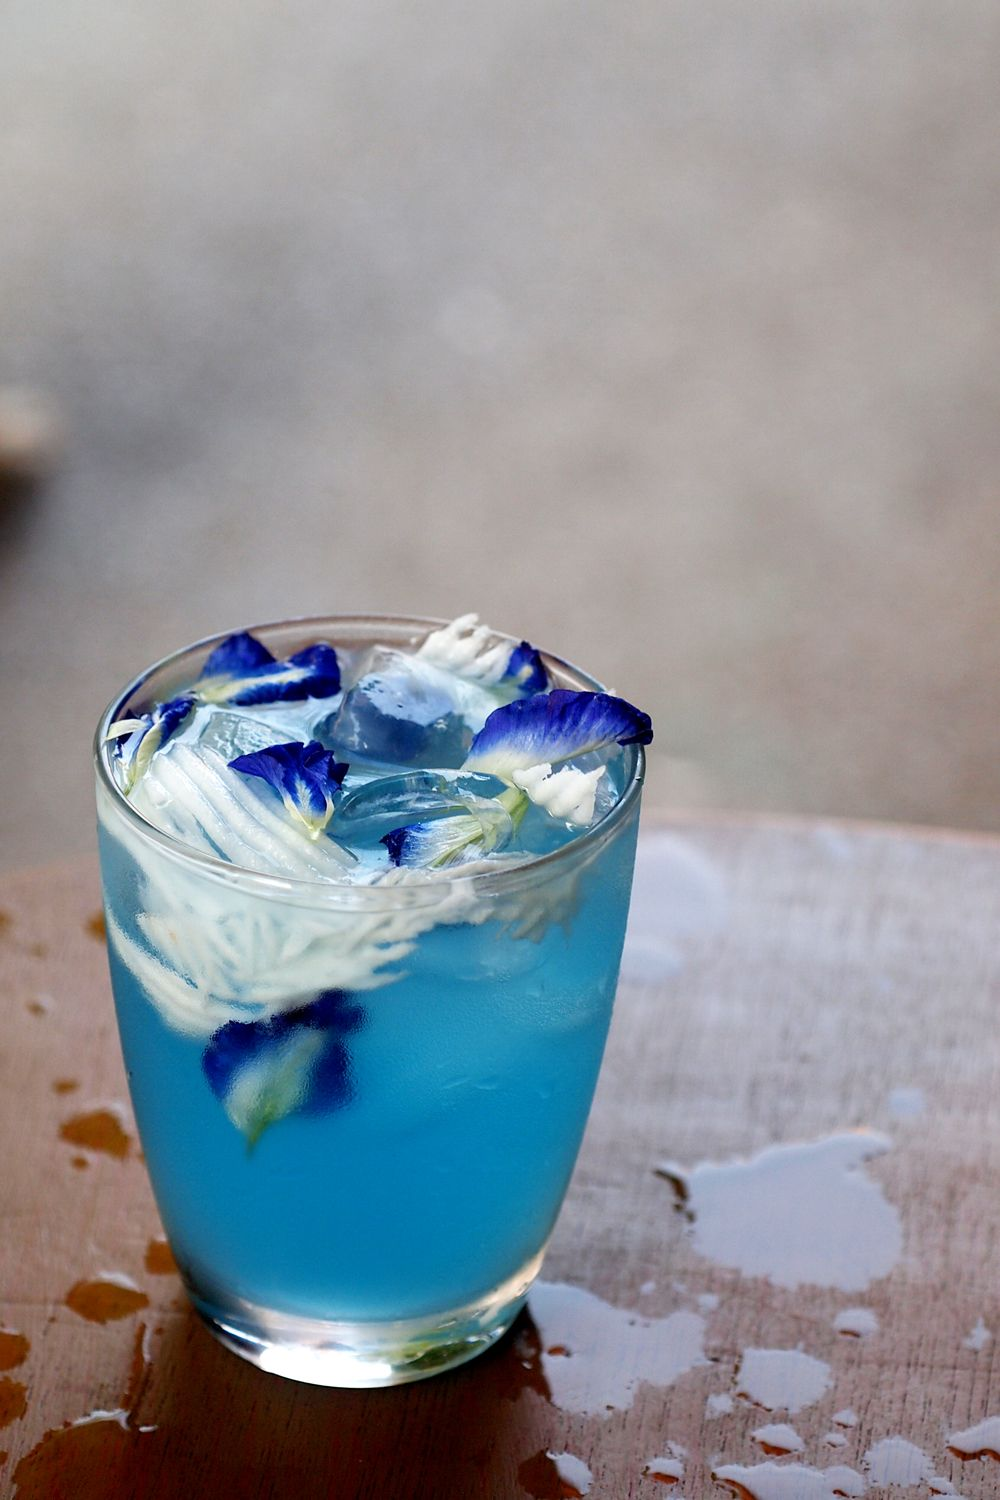 Butterfly Pea Coconut Juice Butterfly pea flower tea